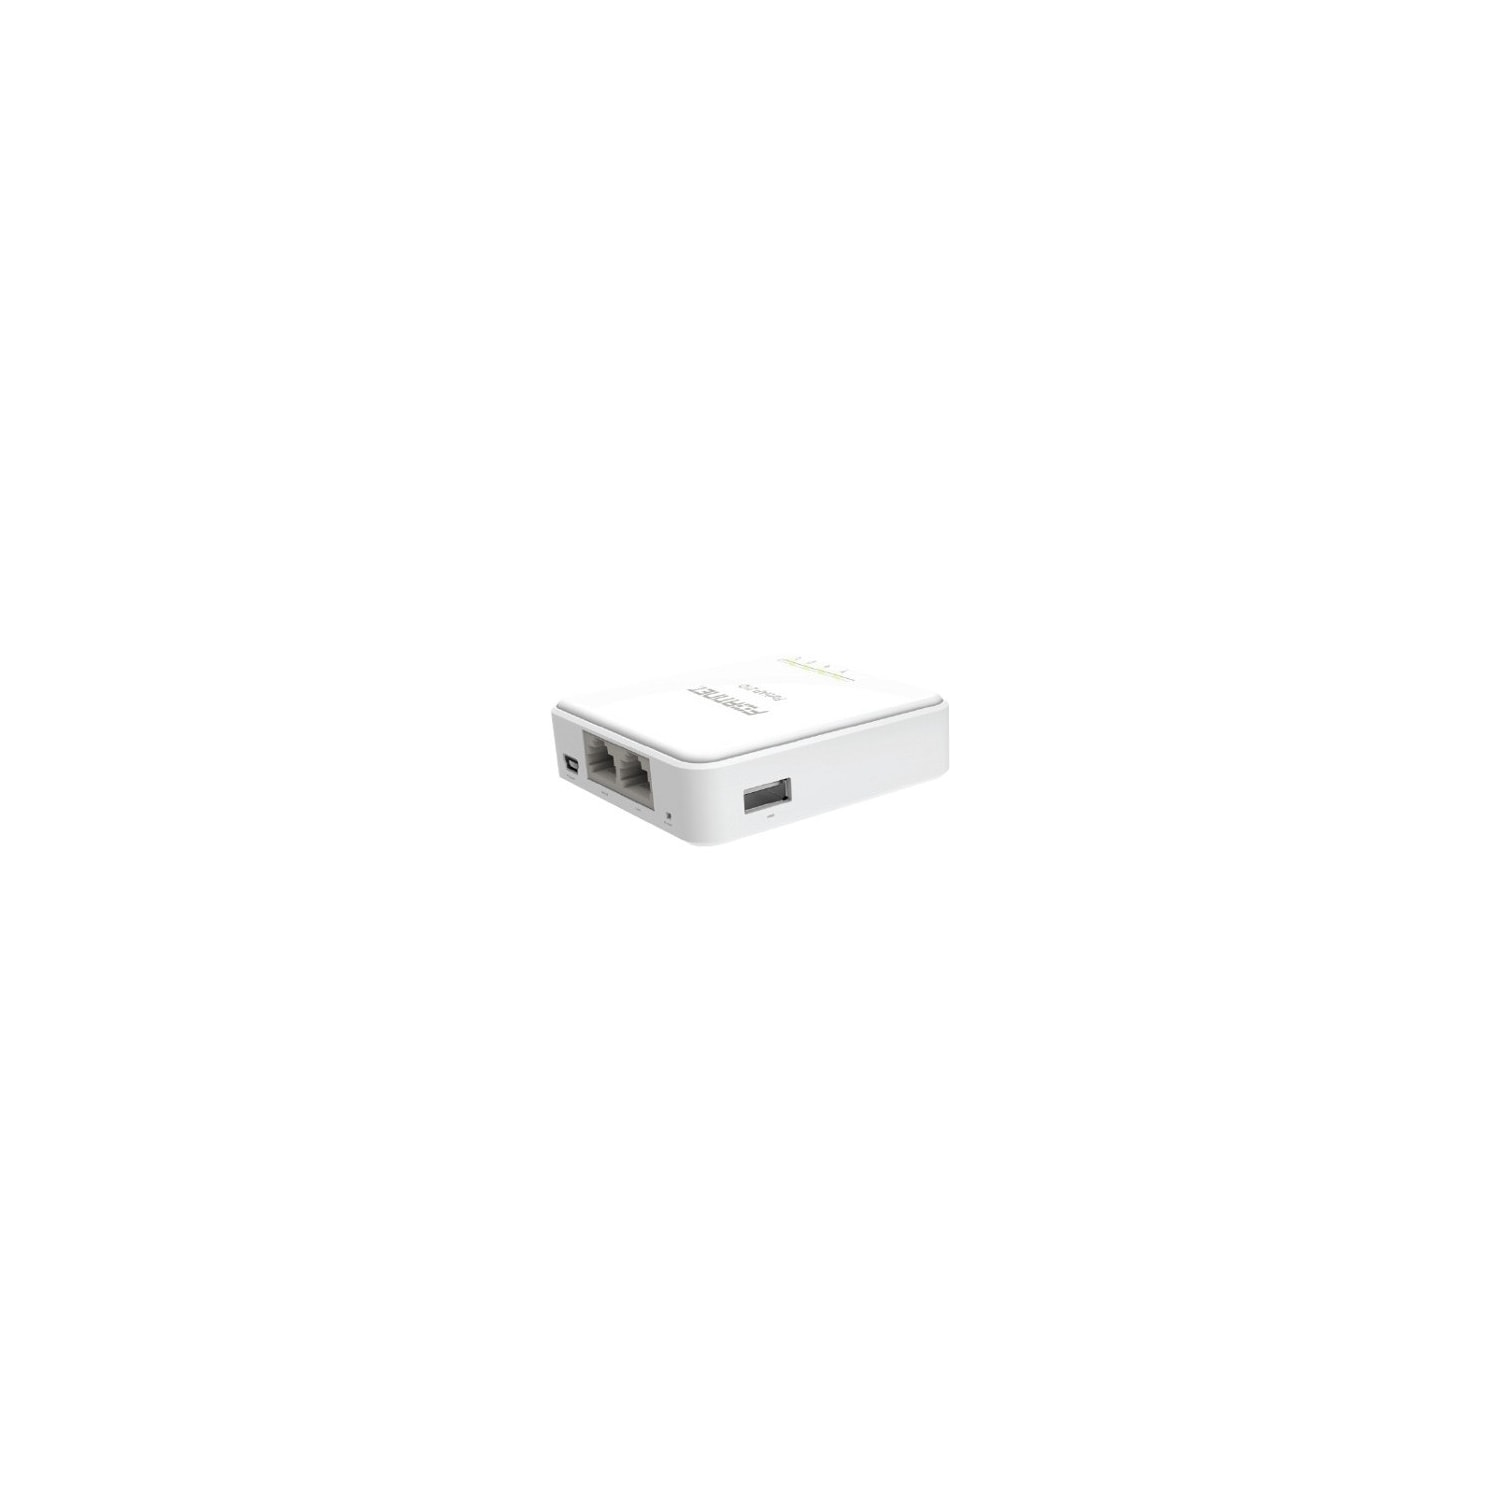 Fortinet FortiAP 21D IEEE 802 11n 300 Mbit/s Wireless Access Point